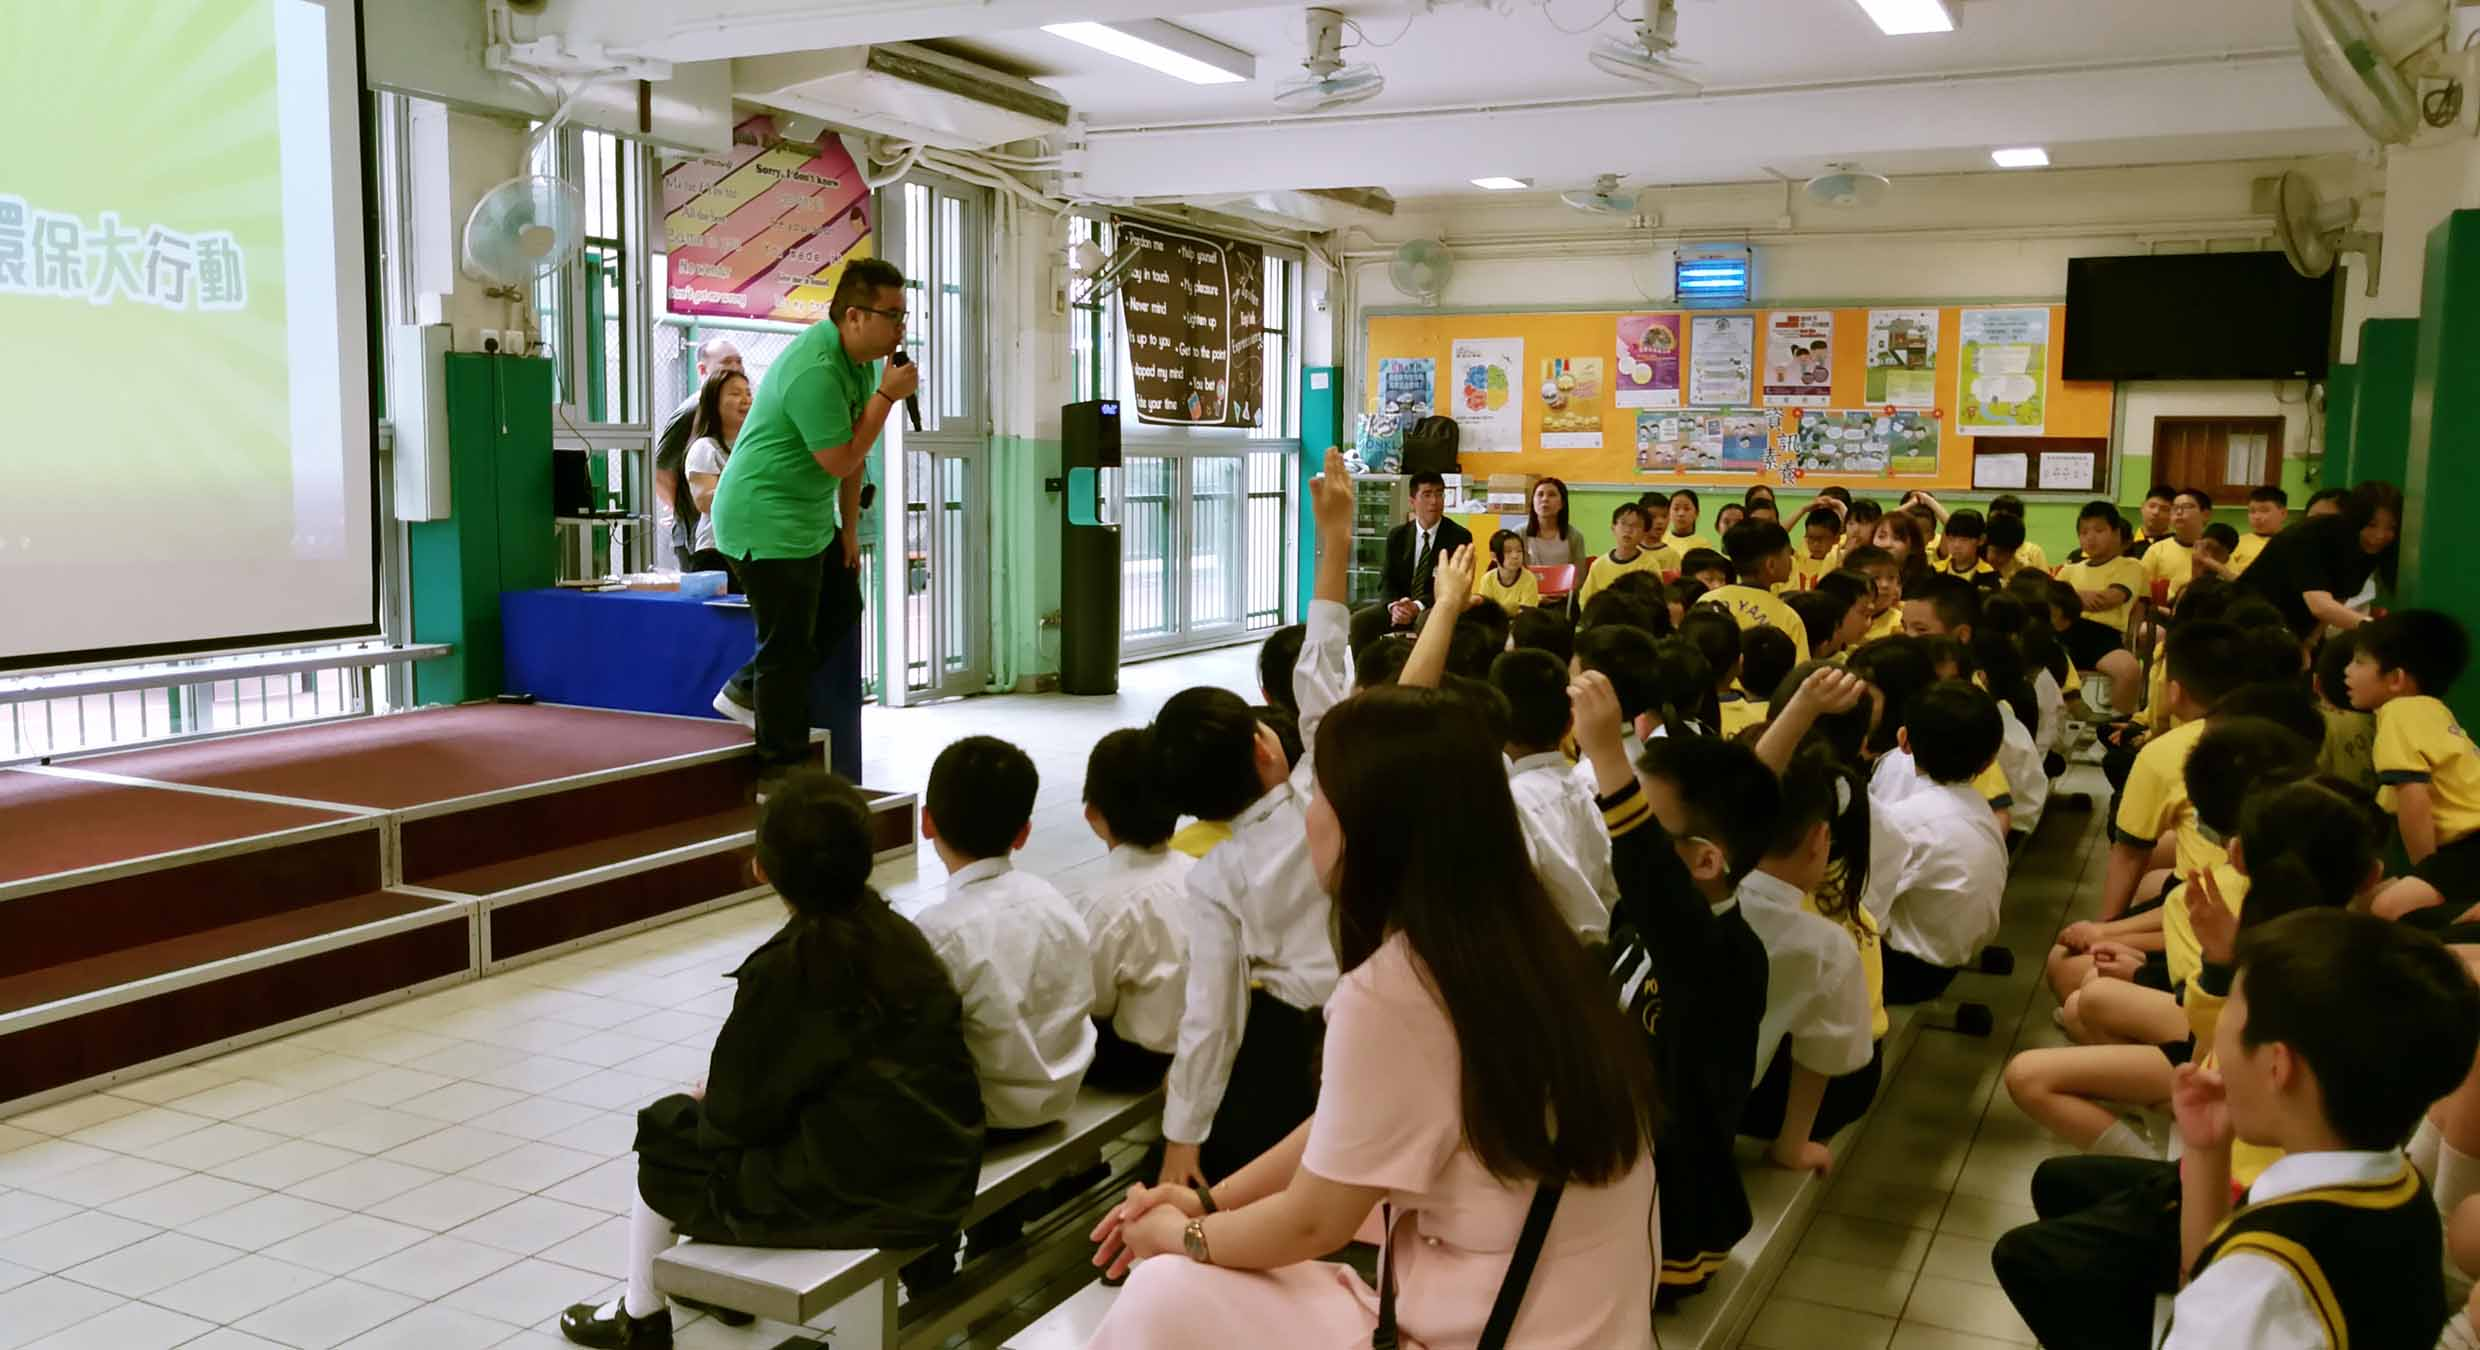 tiger-eco-school-tour-2019-5.jpg (207 KB)